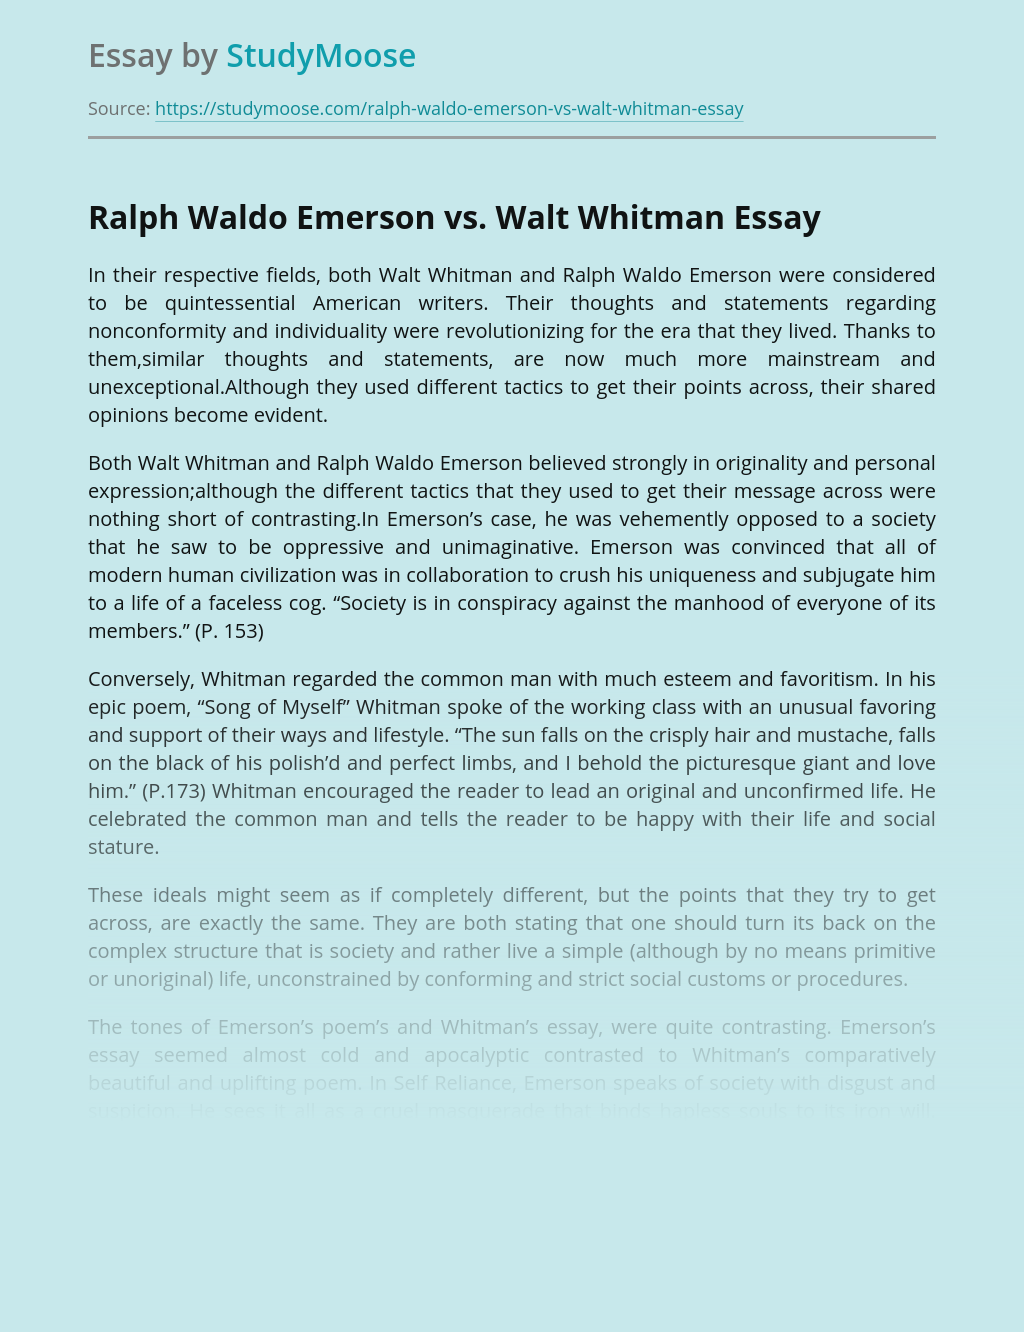 Transcendentalism of Ralph Waldo Emerson vs Walt Whitman